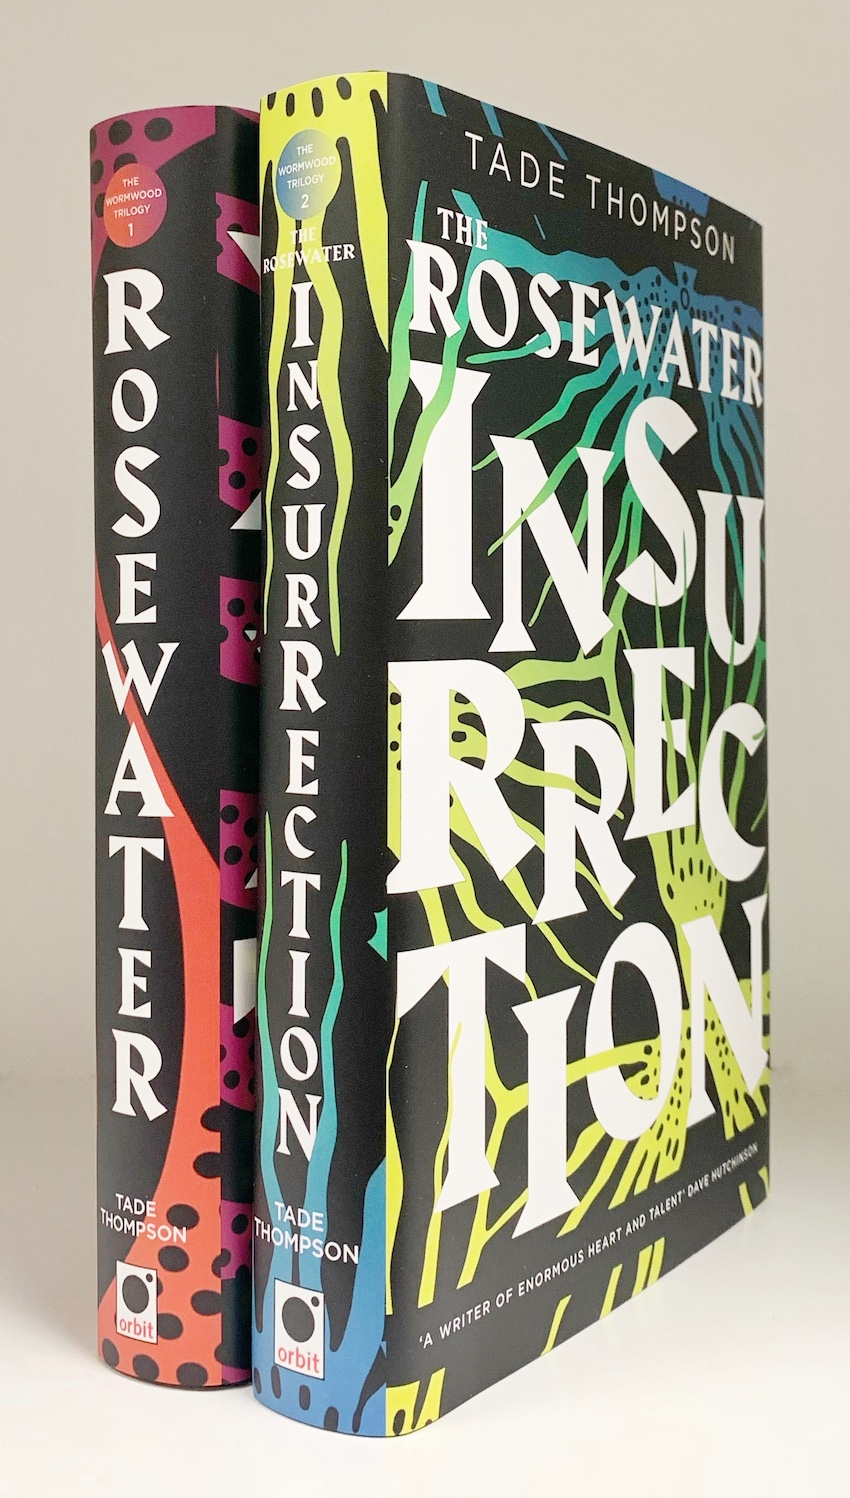 Image for ROSEWATER & THE ROSEWATER INSURRECTION Set of Exclusive Hardbacks, Signed & Numbered